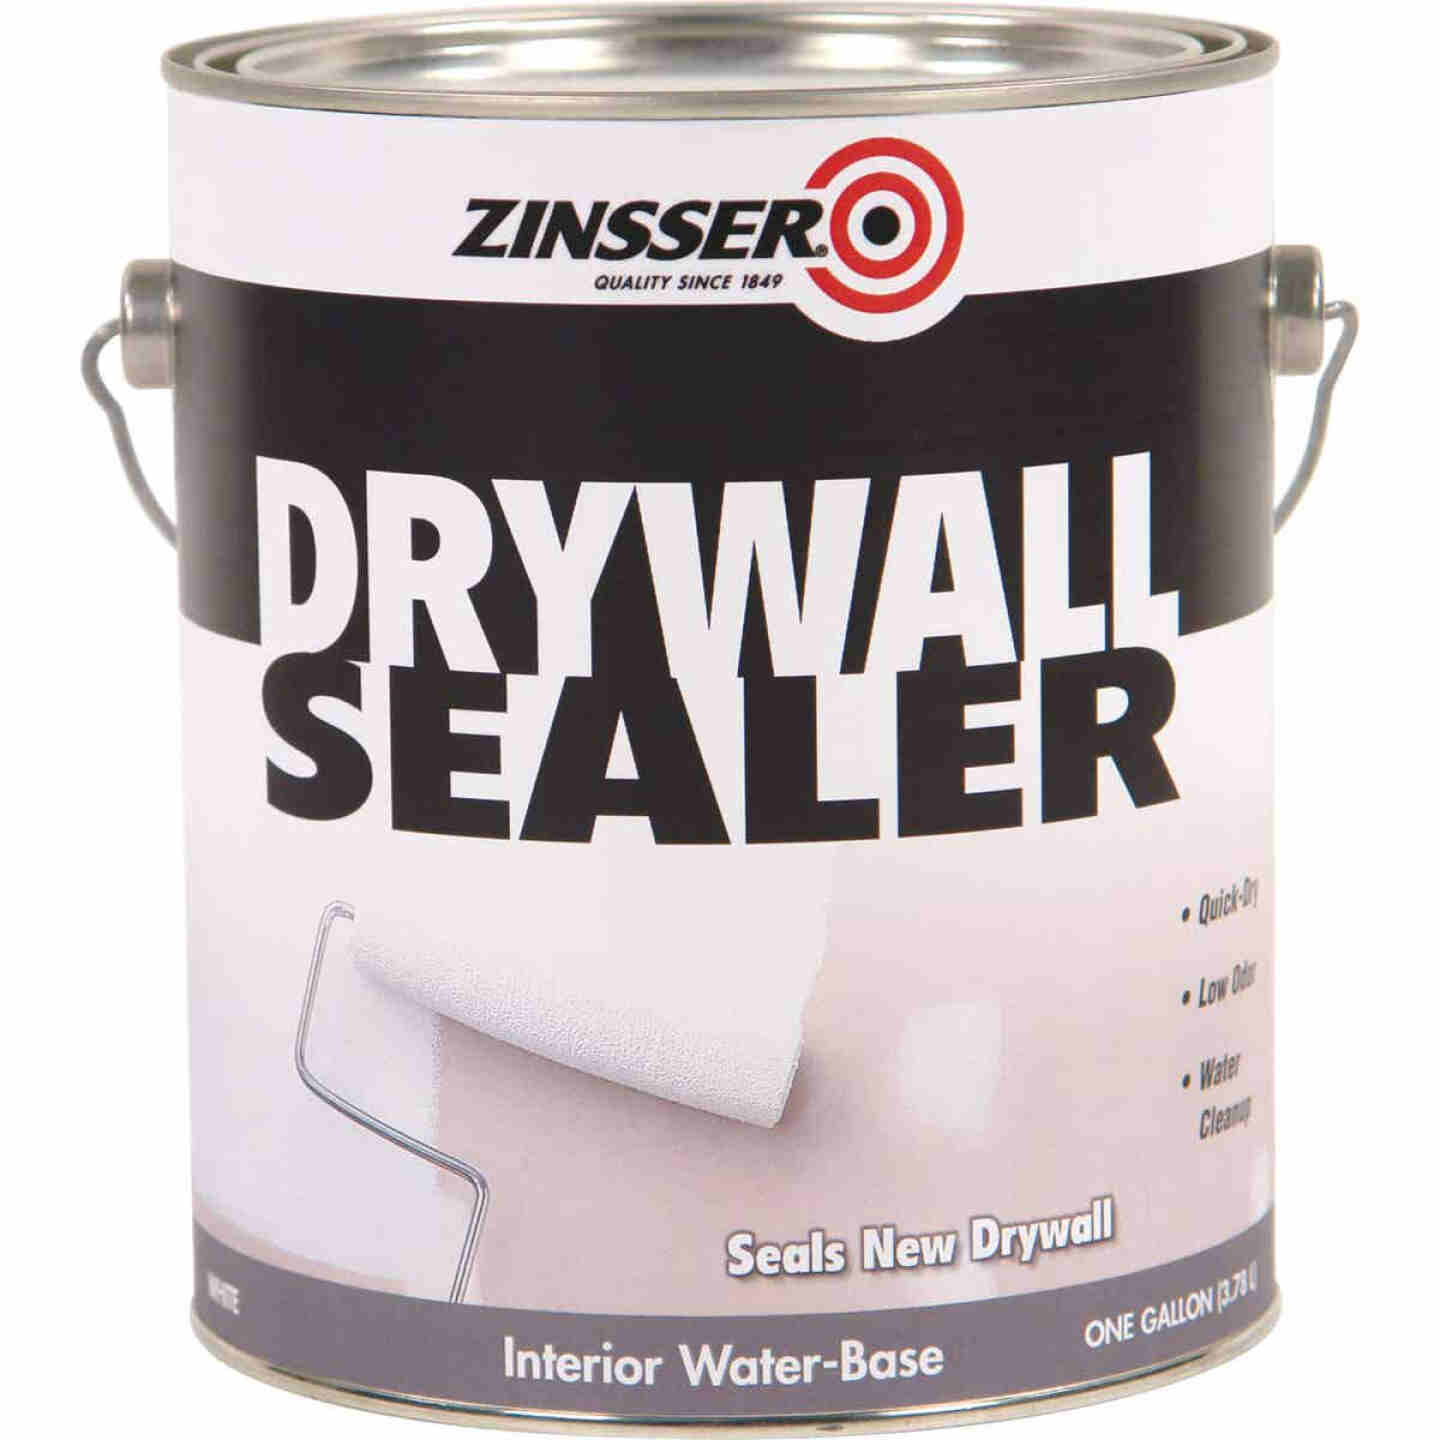 Zinsser Water Base Low Odor Drywall Sealer, 1 Gal. Image 1